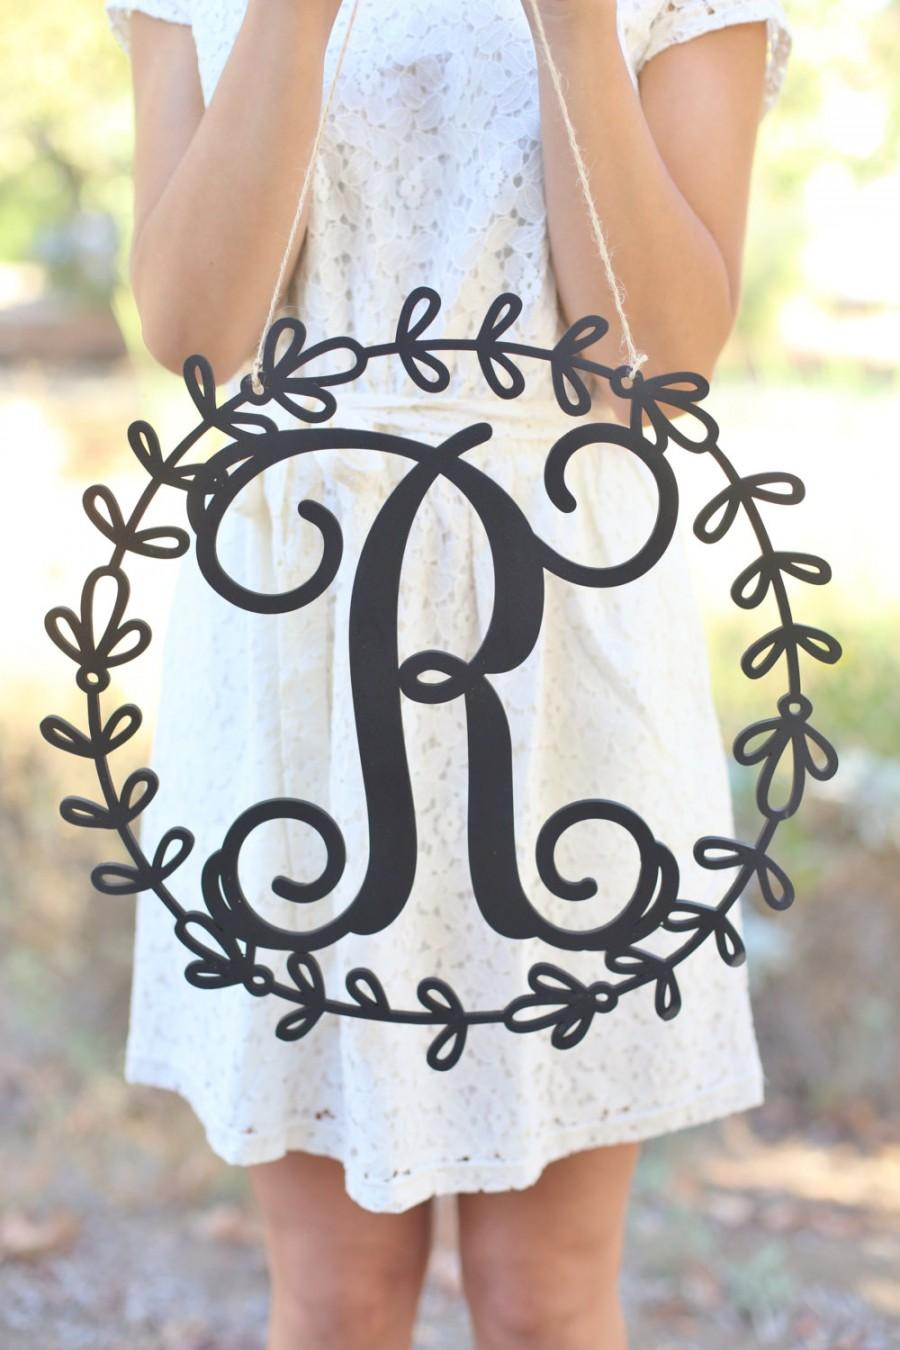 Mariage - Personalized Rustic Wood Monogrammed Sign by Morgann Hill Designs   (Item Number MHD20237)